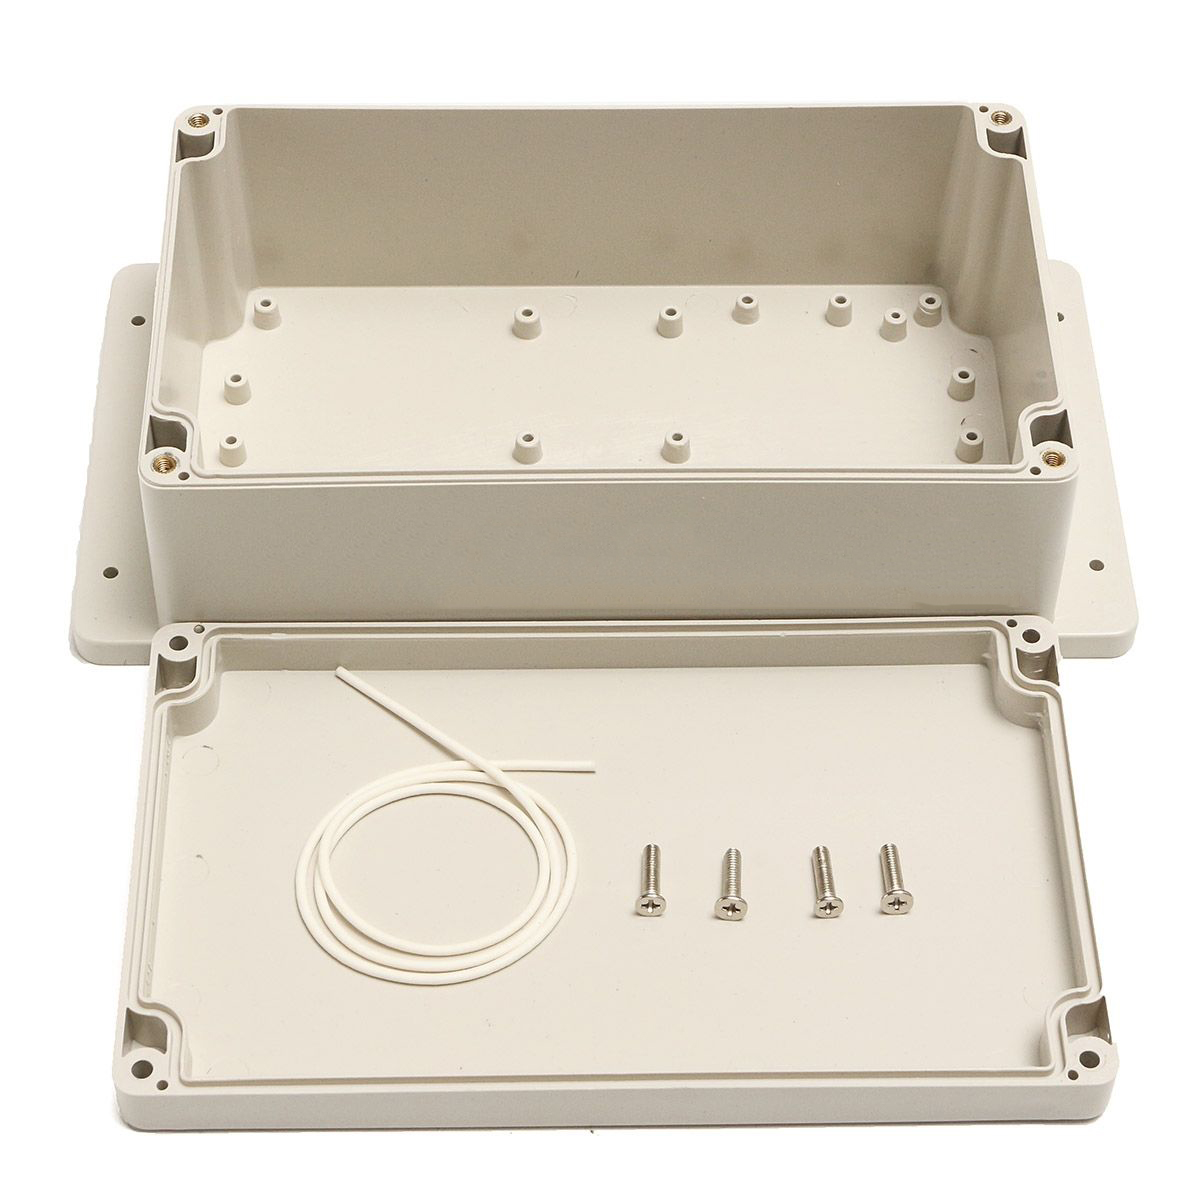 1pc Waterproof IP65 Enclosure Box ABS Plastic Electronic Project Instrument Case 200*120*75mm with 4pcs Screws and Sealed Line waterproof abs plastic electronic box white case 6 size